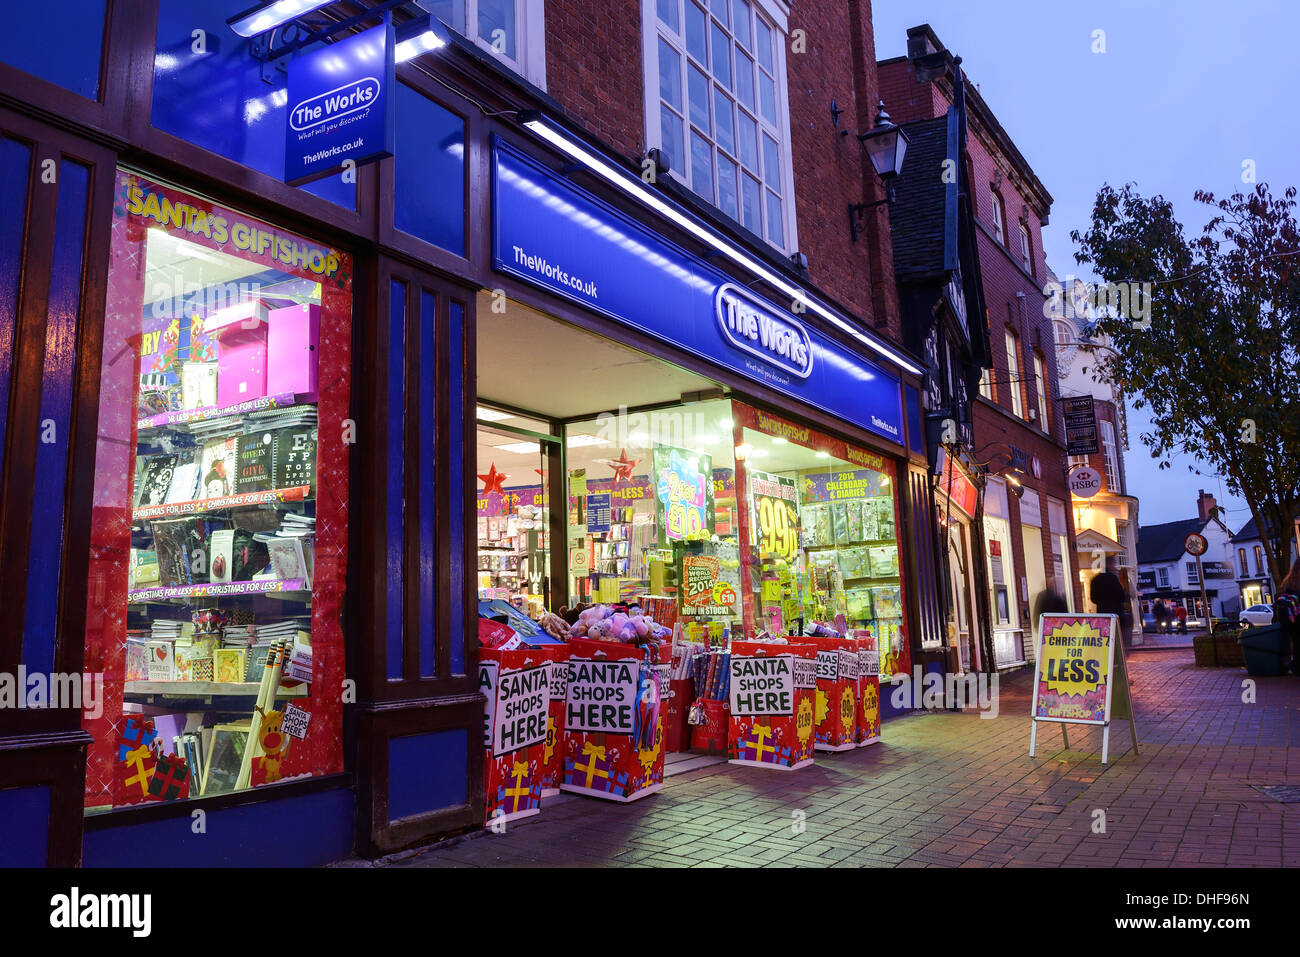 The Works retail shop front - Stock Image